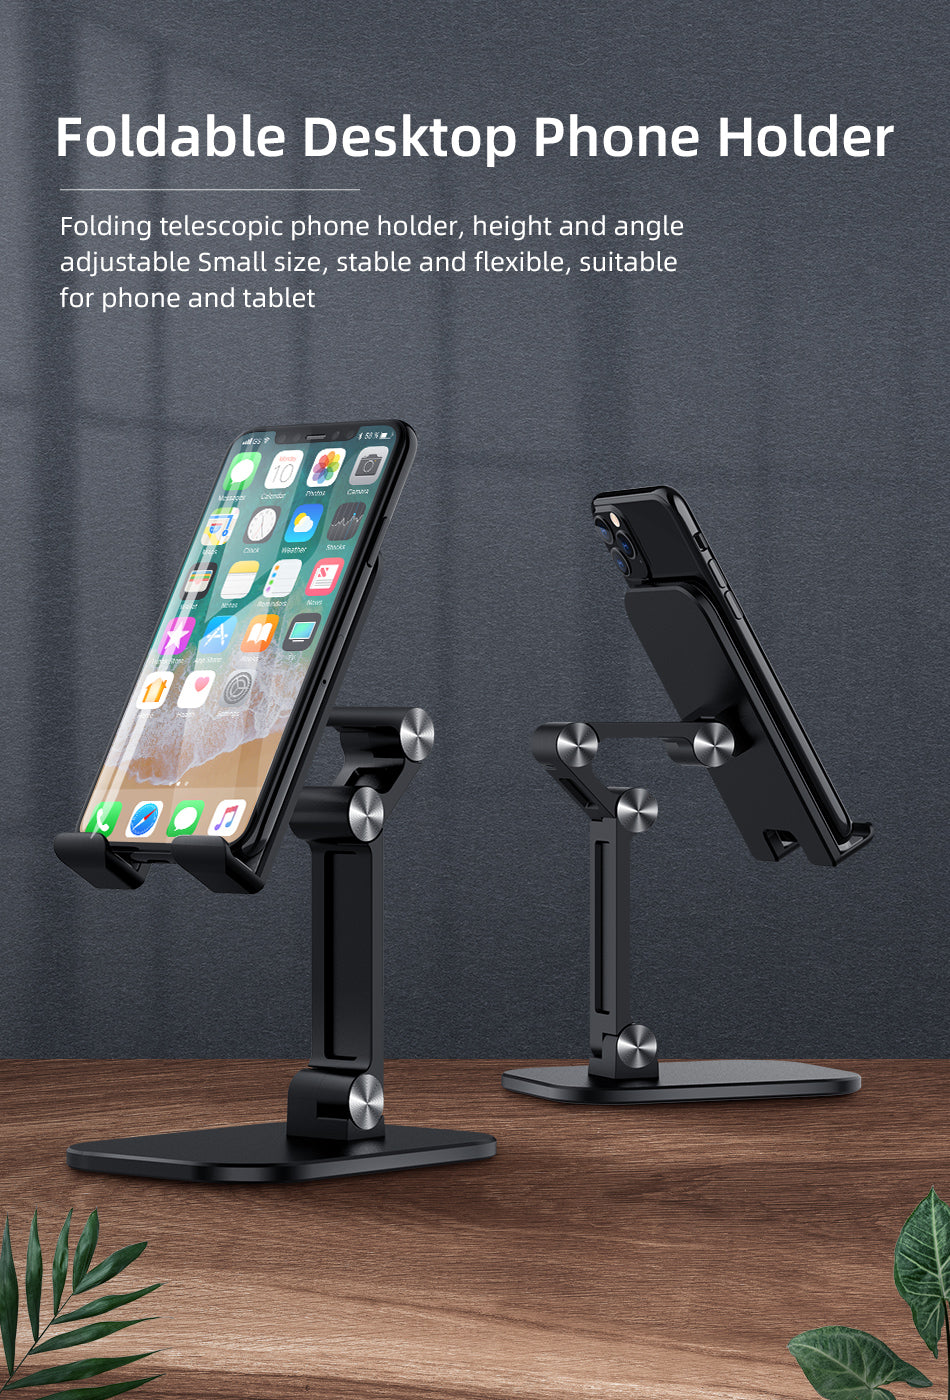 Multi-Angle Foldable Adjustable Desk Mount For iPad iPhone Mobile Phone Stand Universal Tablet Holder Ideal For Positioning Phone For Videocalls Or Movies etc